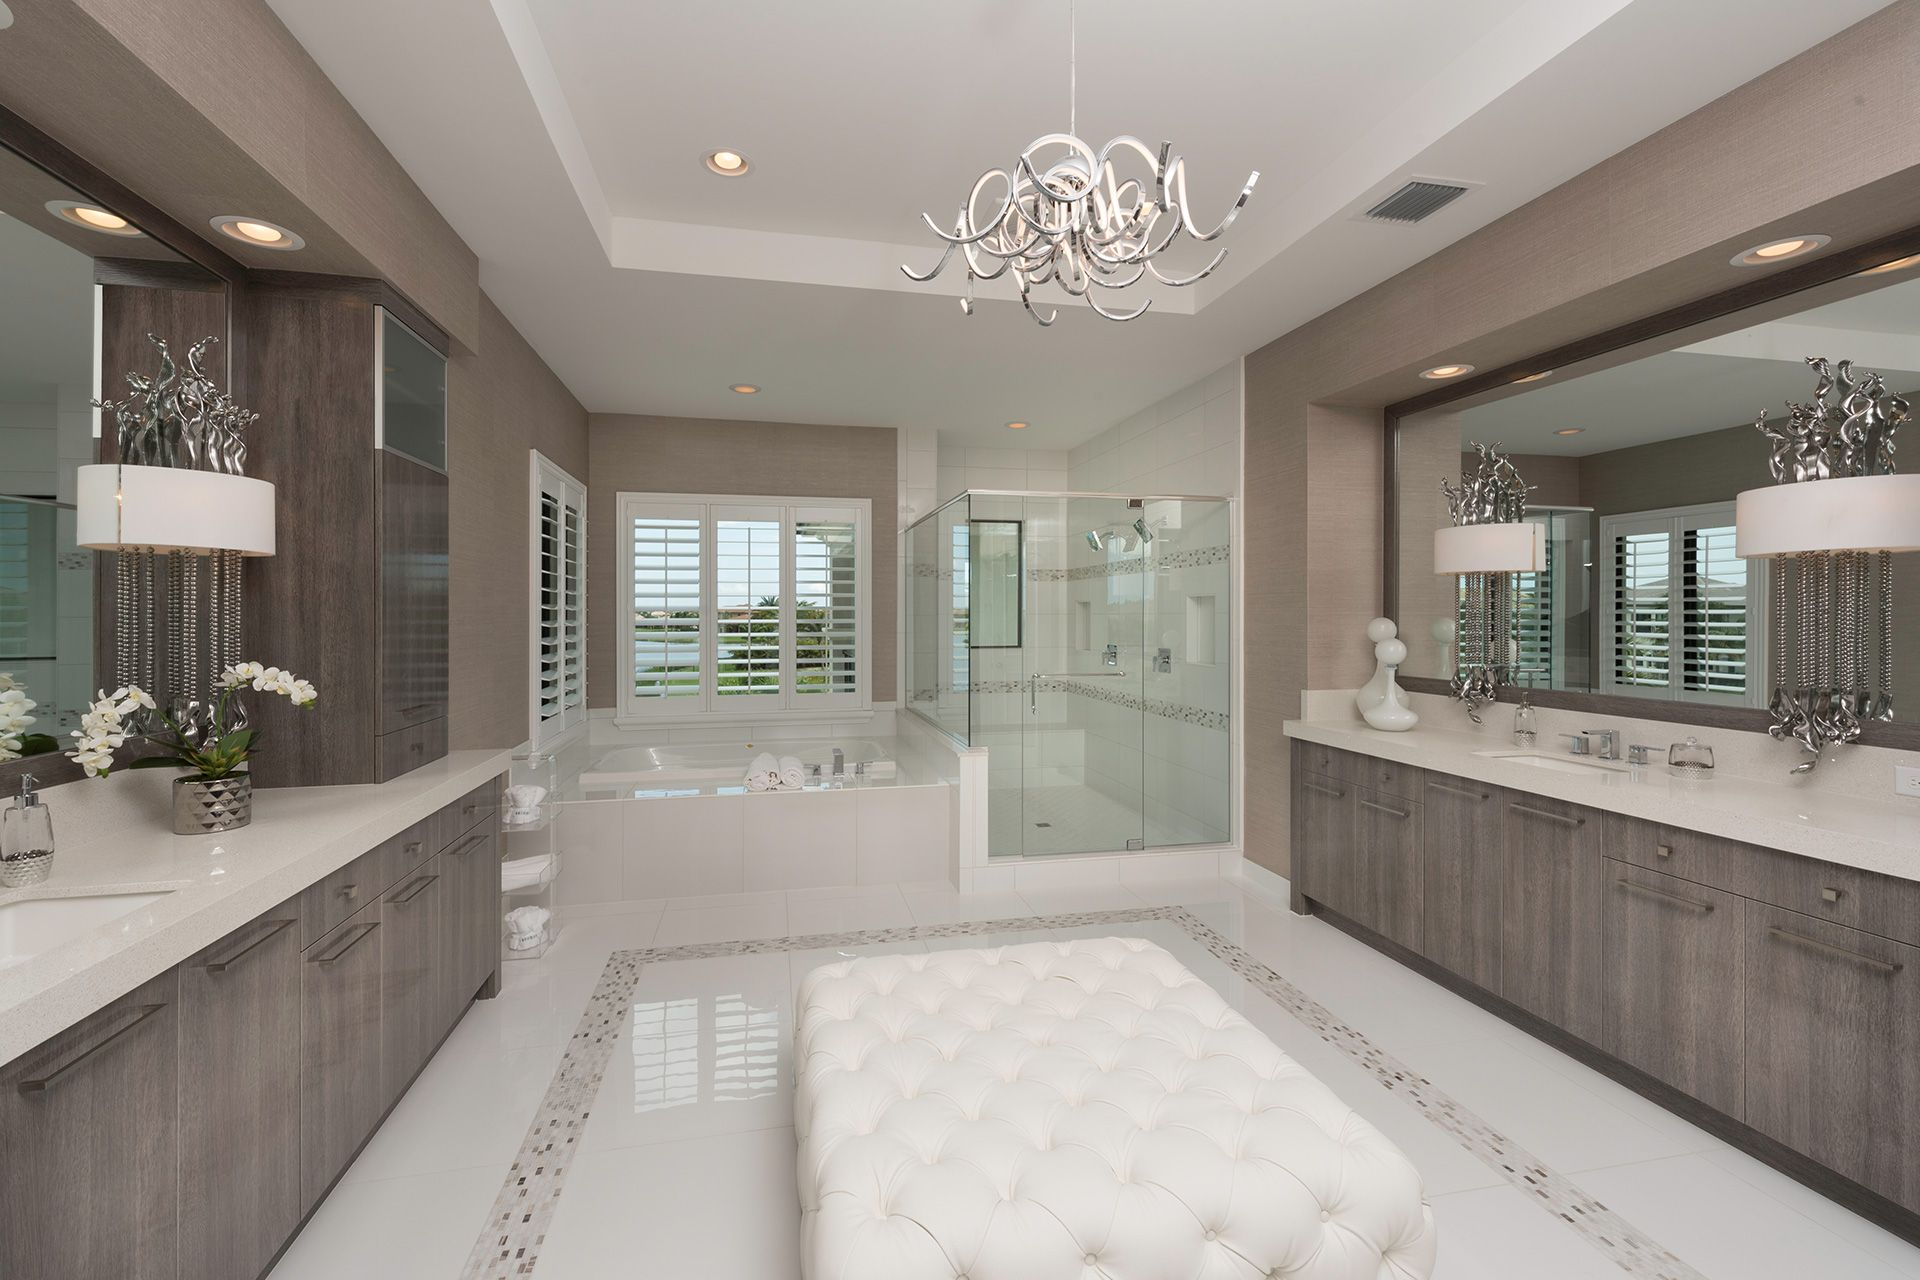 Bathroom featured in the Palazzo By GL Homes in Palm Beach County, FL